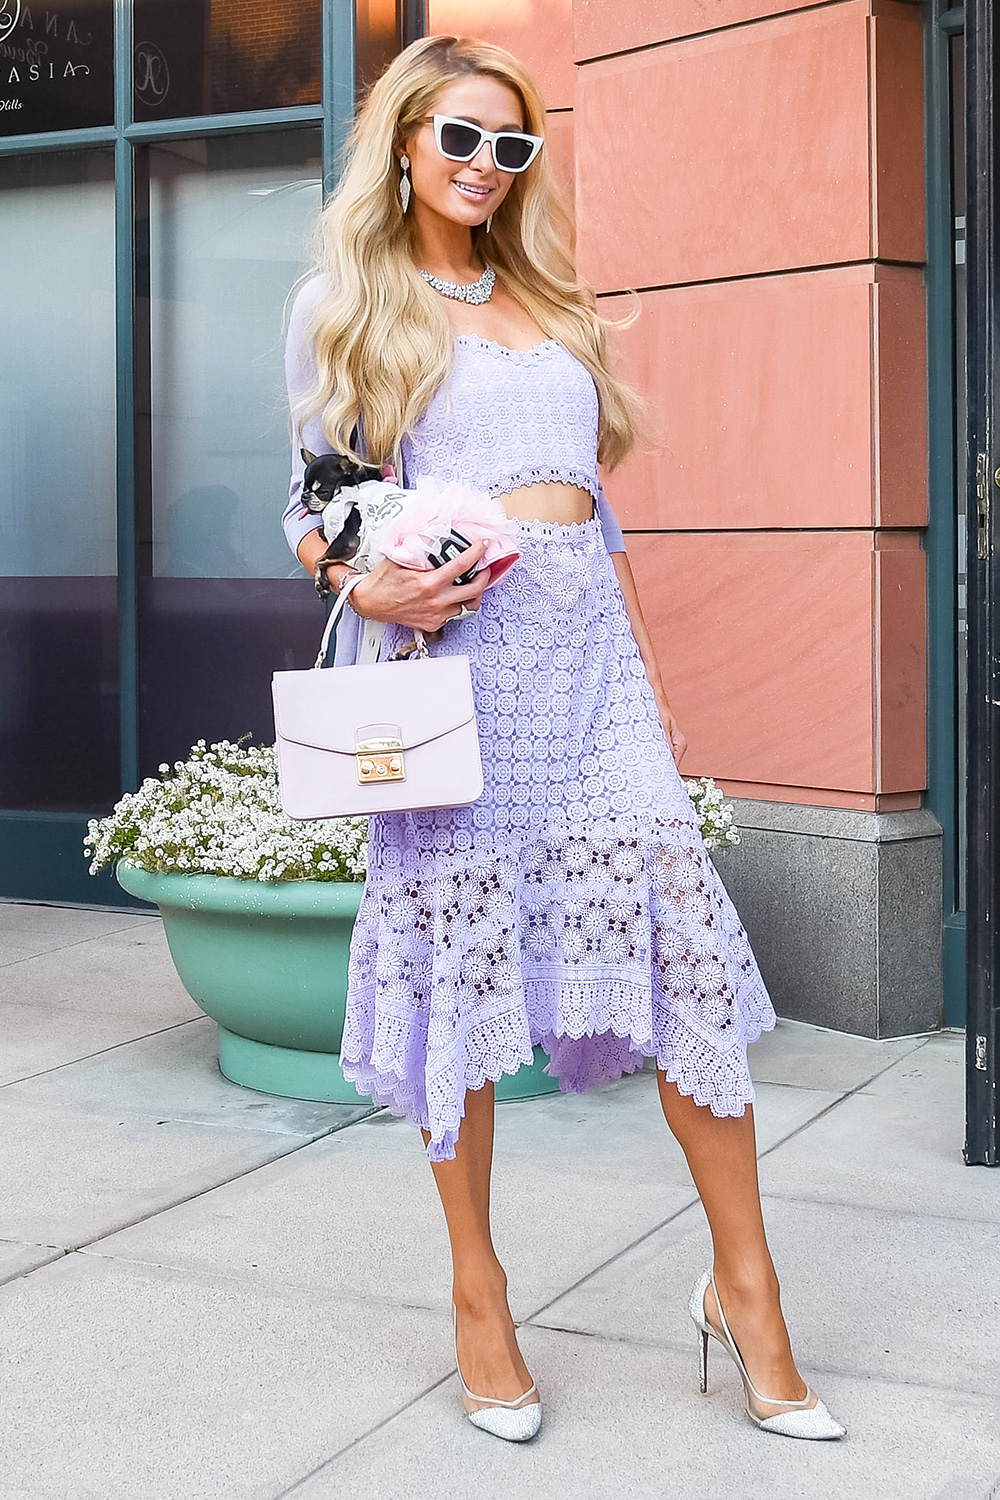 Paris Hilton is seen on January 22, 2020 in Los Angeles, California